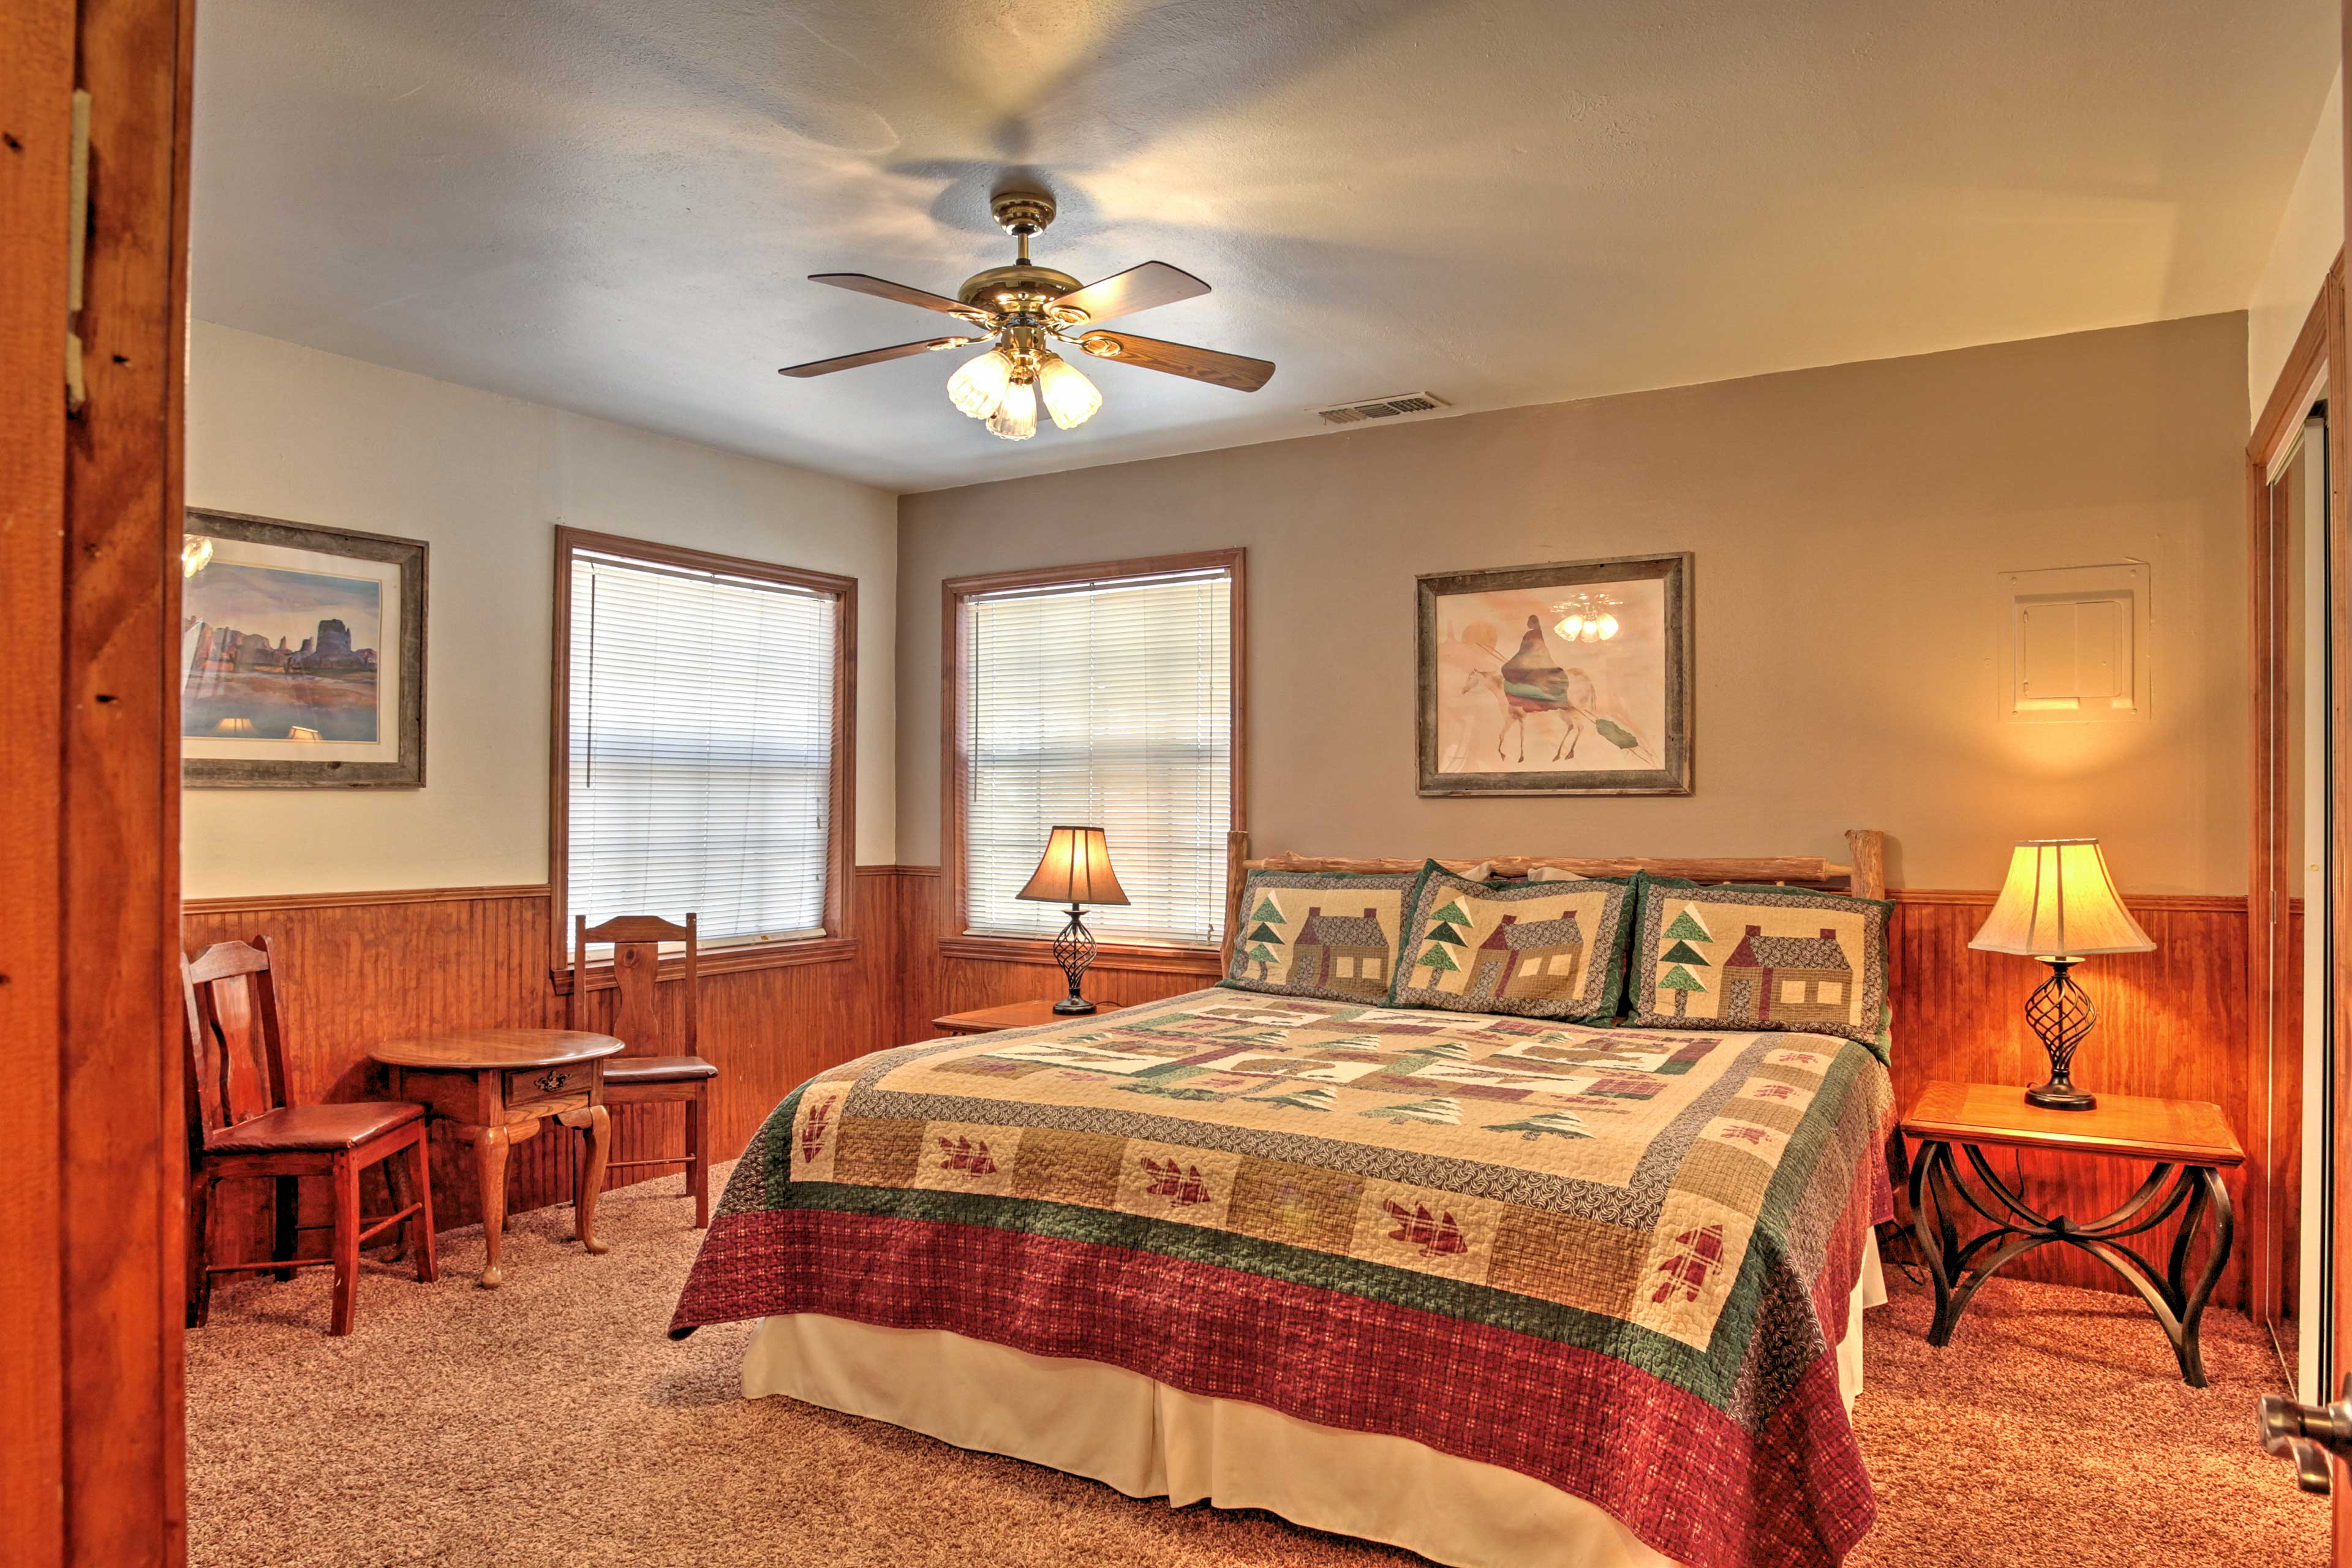 The master bedroom features a king-sized bed and ensuite bathroom.